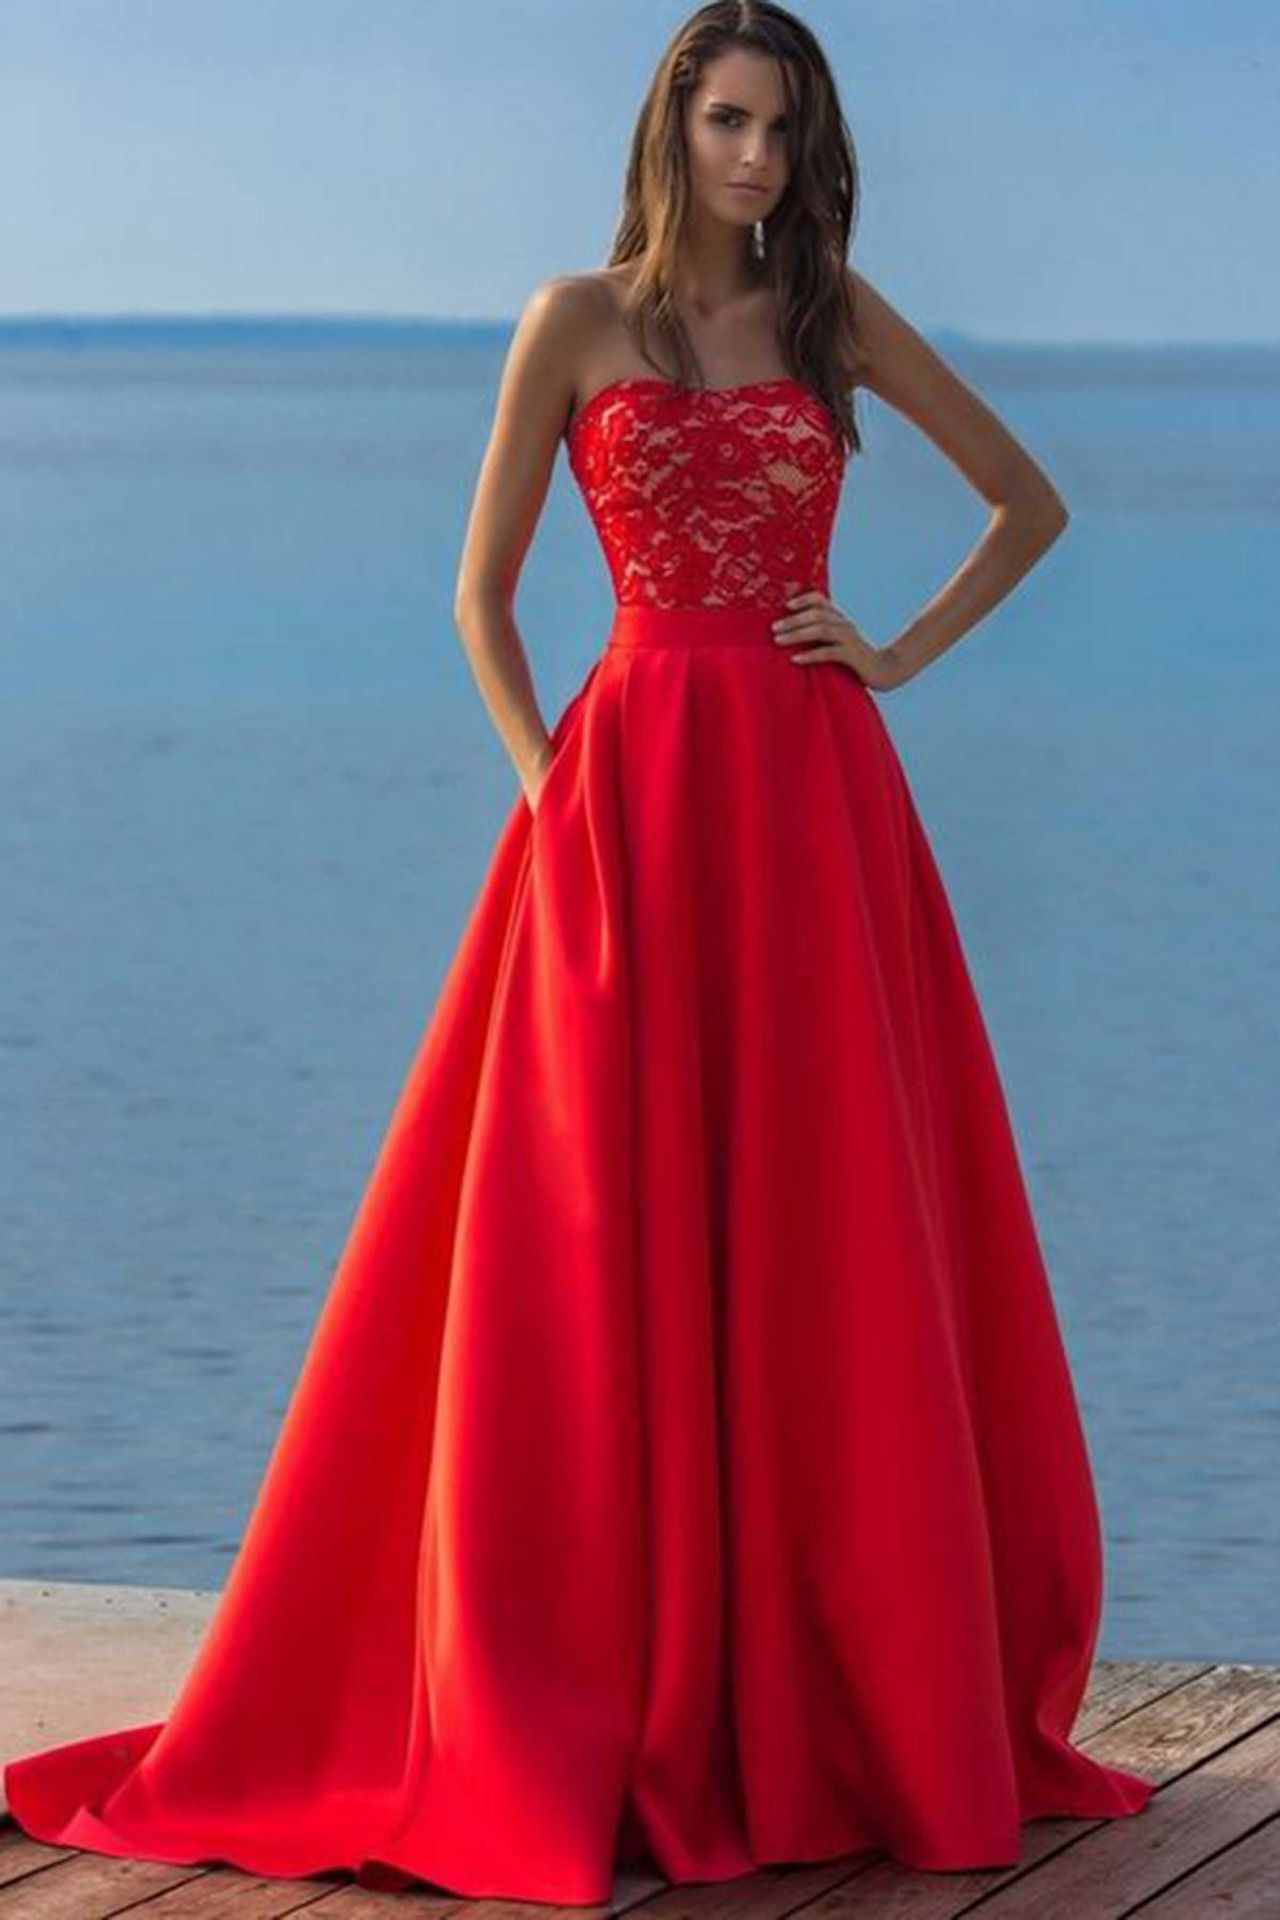 Red lace chiffon prom dress, formal dress, cute sweetheart dress for ...